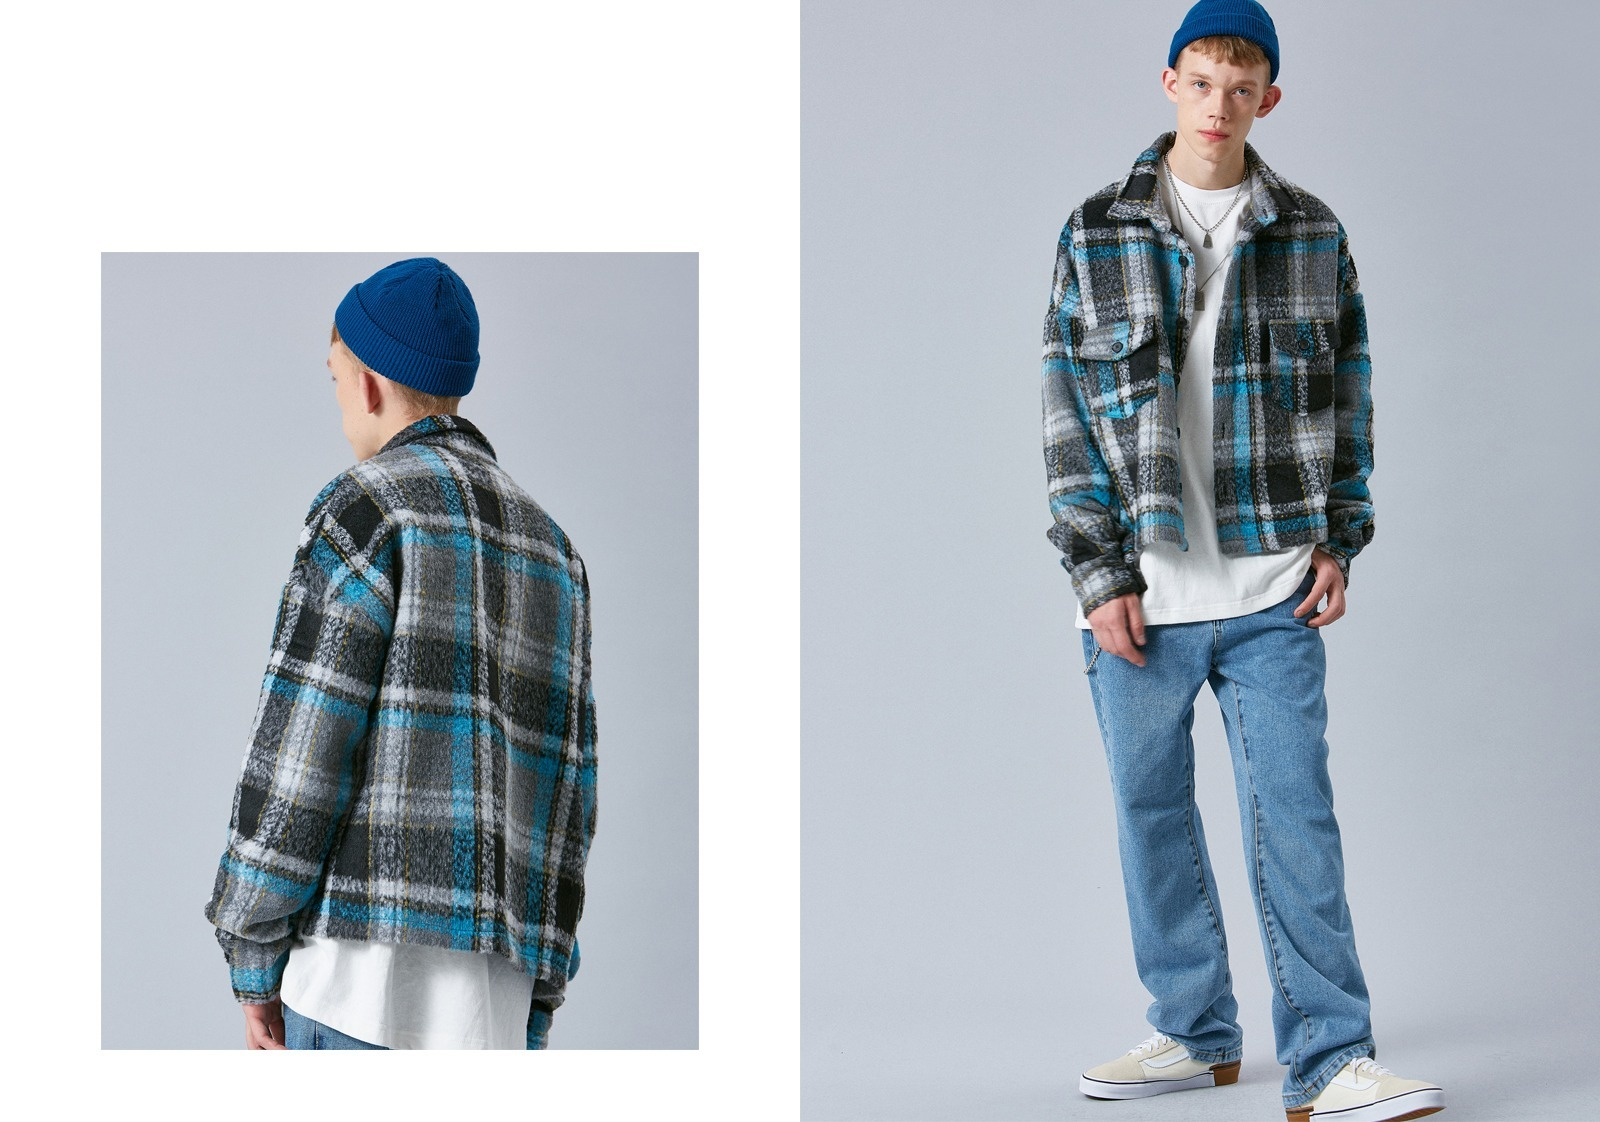 2018 F/W COLLECTION #2 LOOKBOOK